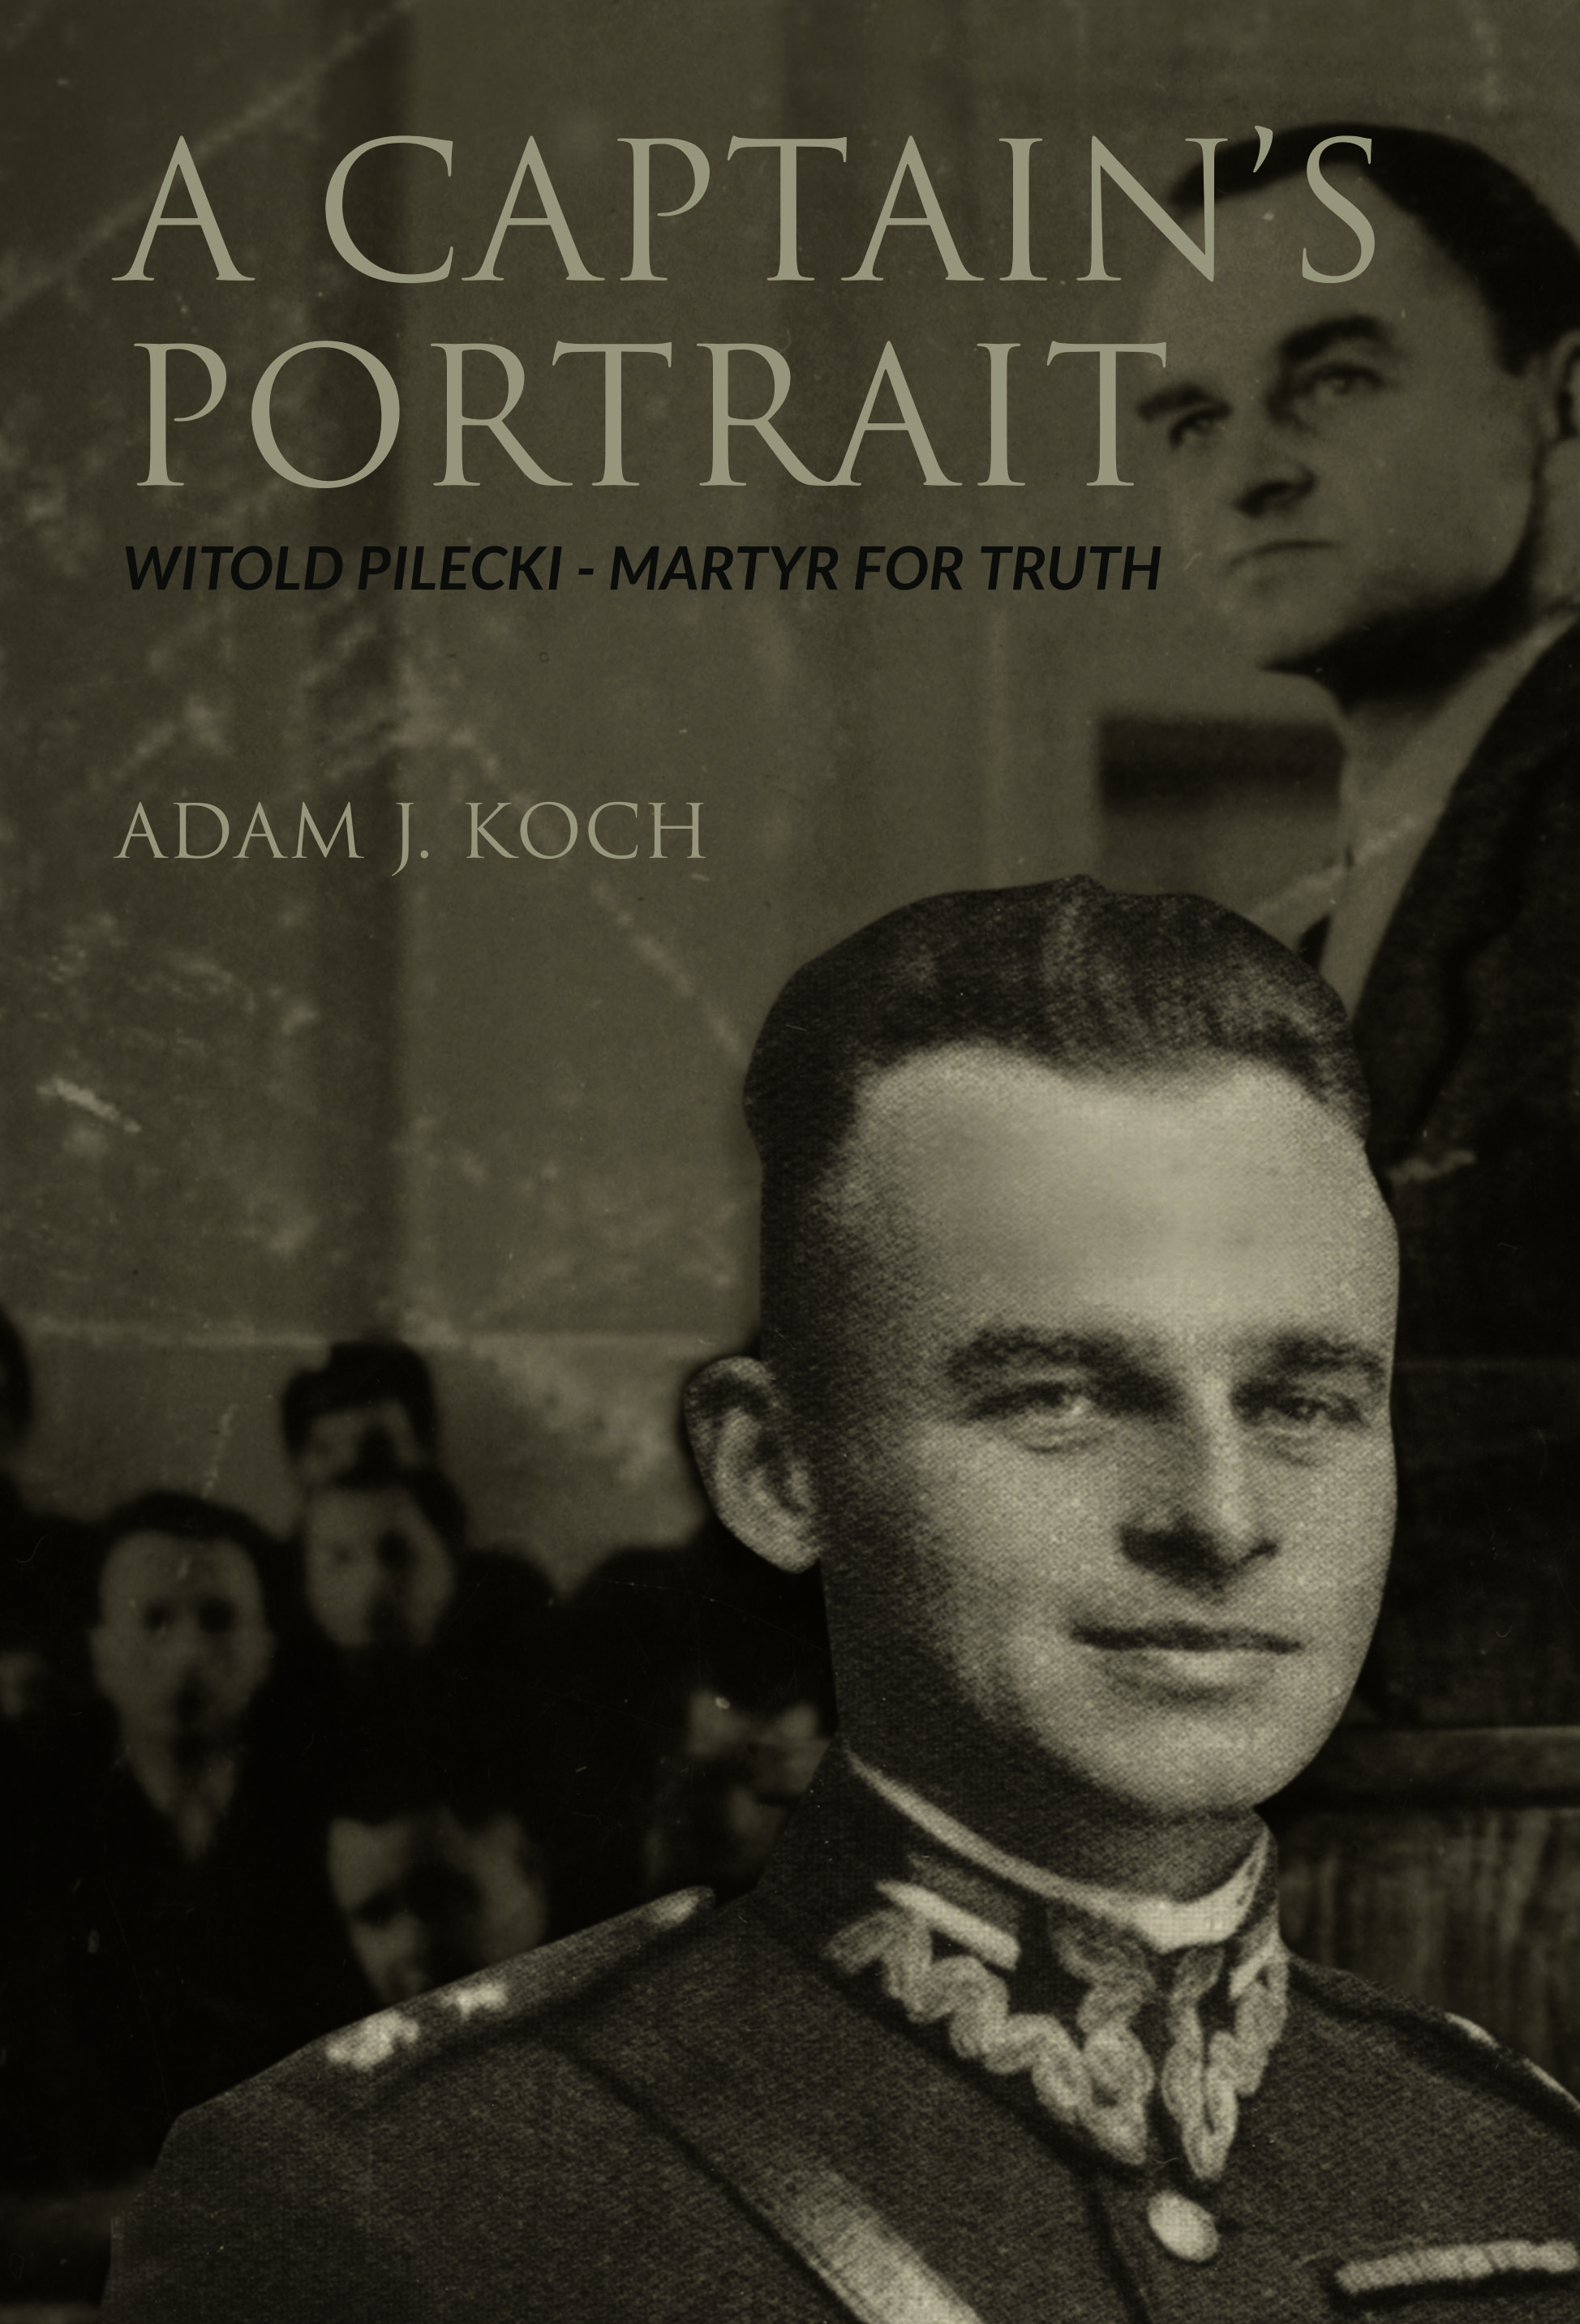 A Captain's Portrait Witold Pilecki - Martyr for Truth / Adam J Koch